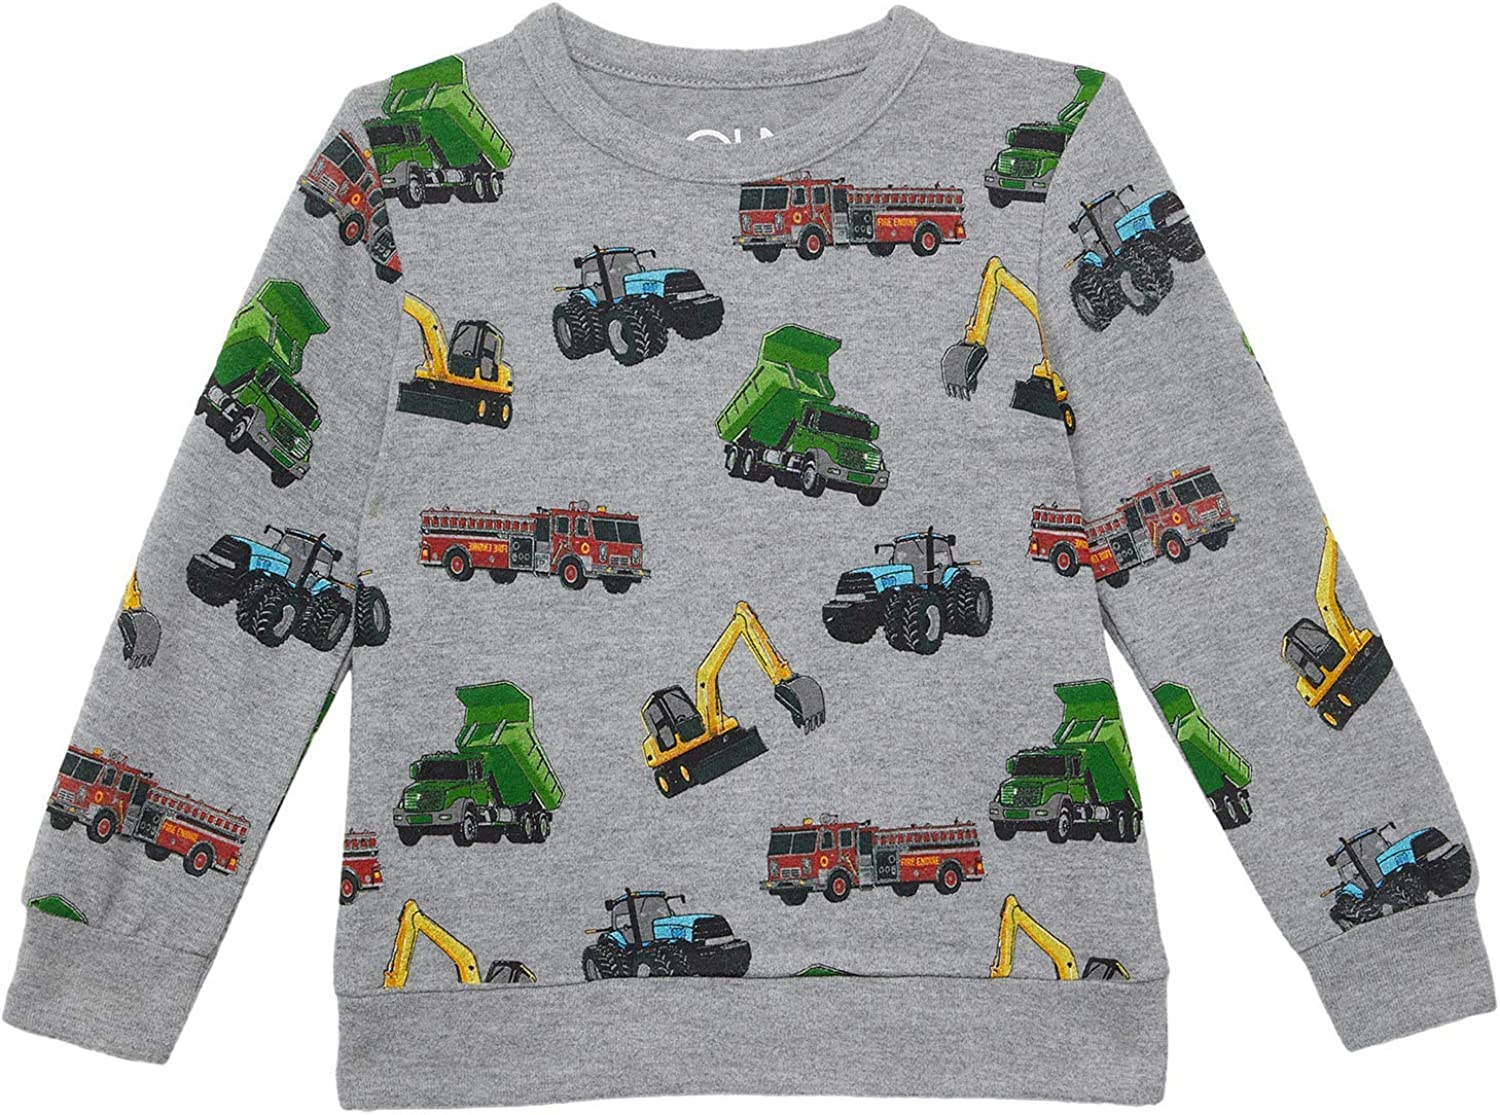 CHASER Boy's RPET Recycled Bliss Knit Long Sleeve Crew Neck Pullover (Little Kids/Big Kids)